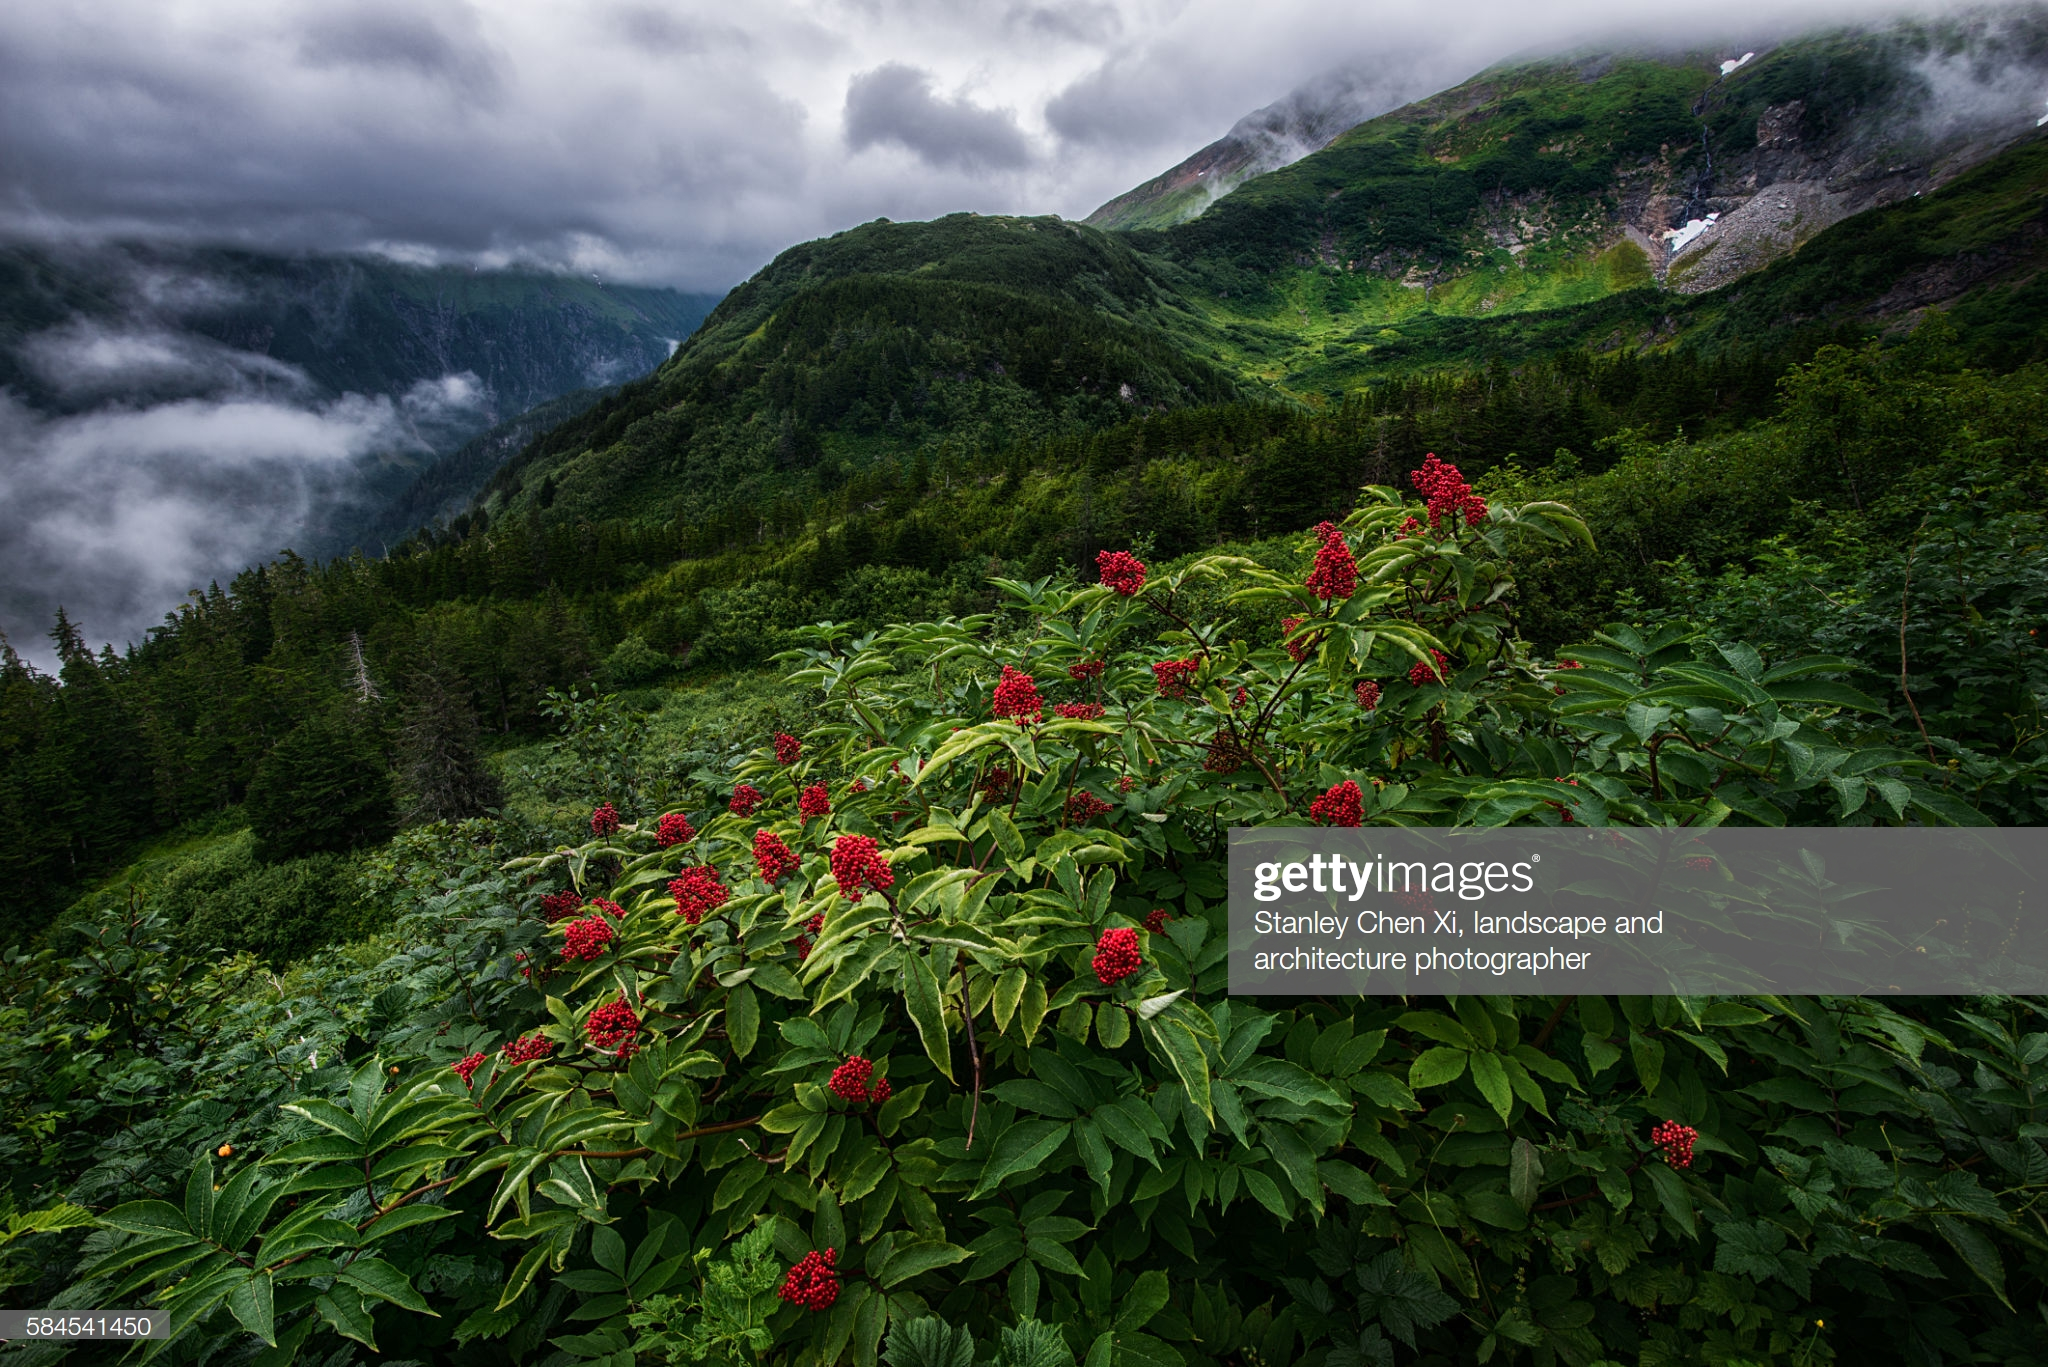 gettyimages-584541450-2048x2048.jpg